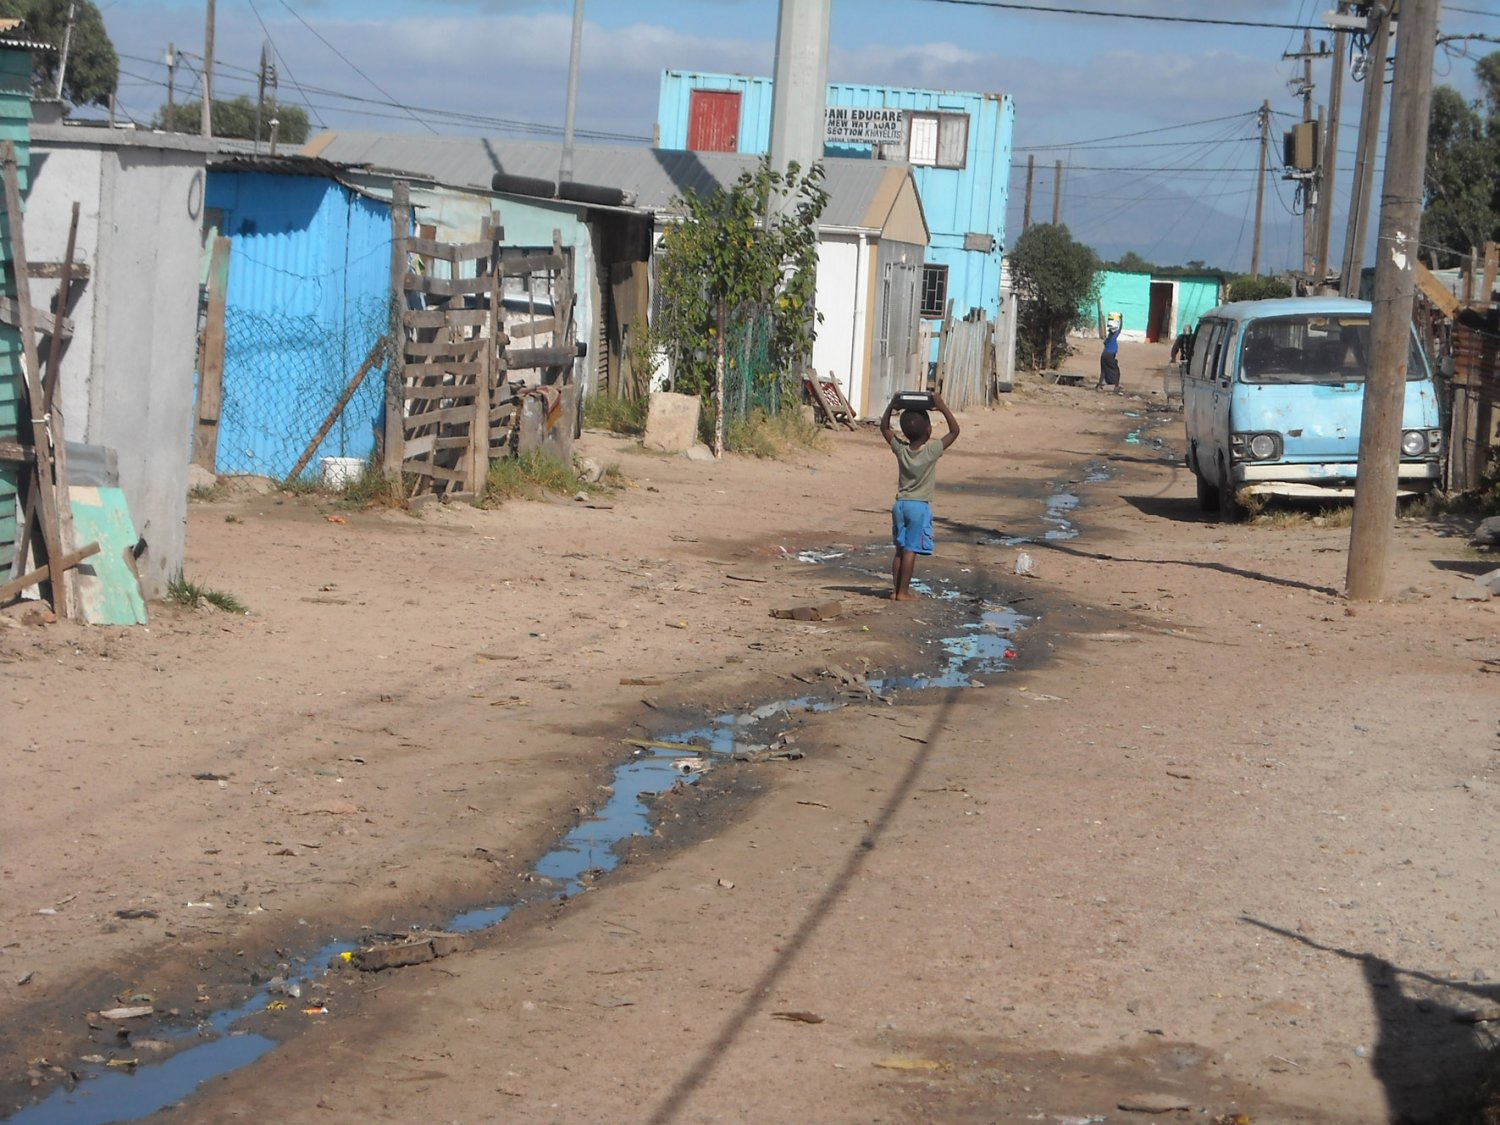 A street in TR Section, Khayelitsha, where residents have protested over lack of service delivery. Photo: Brenda Nkuna/WCN